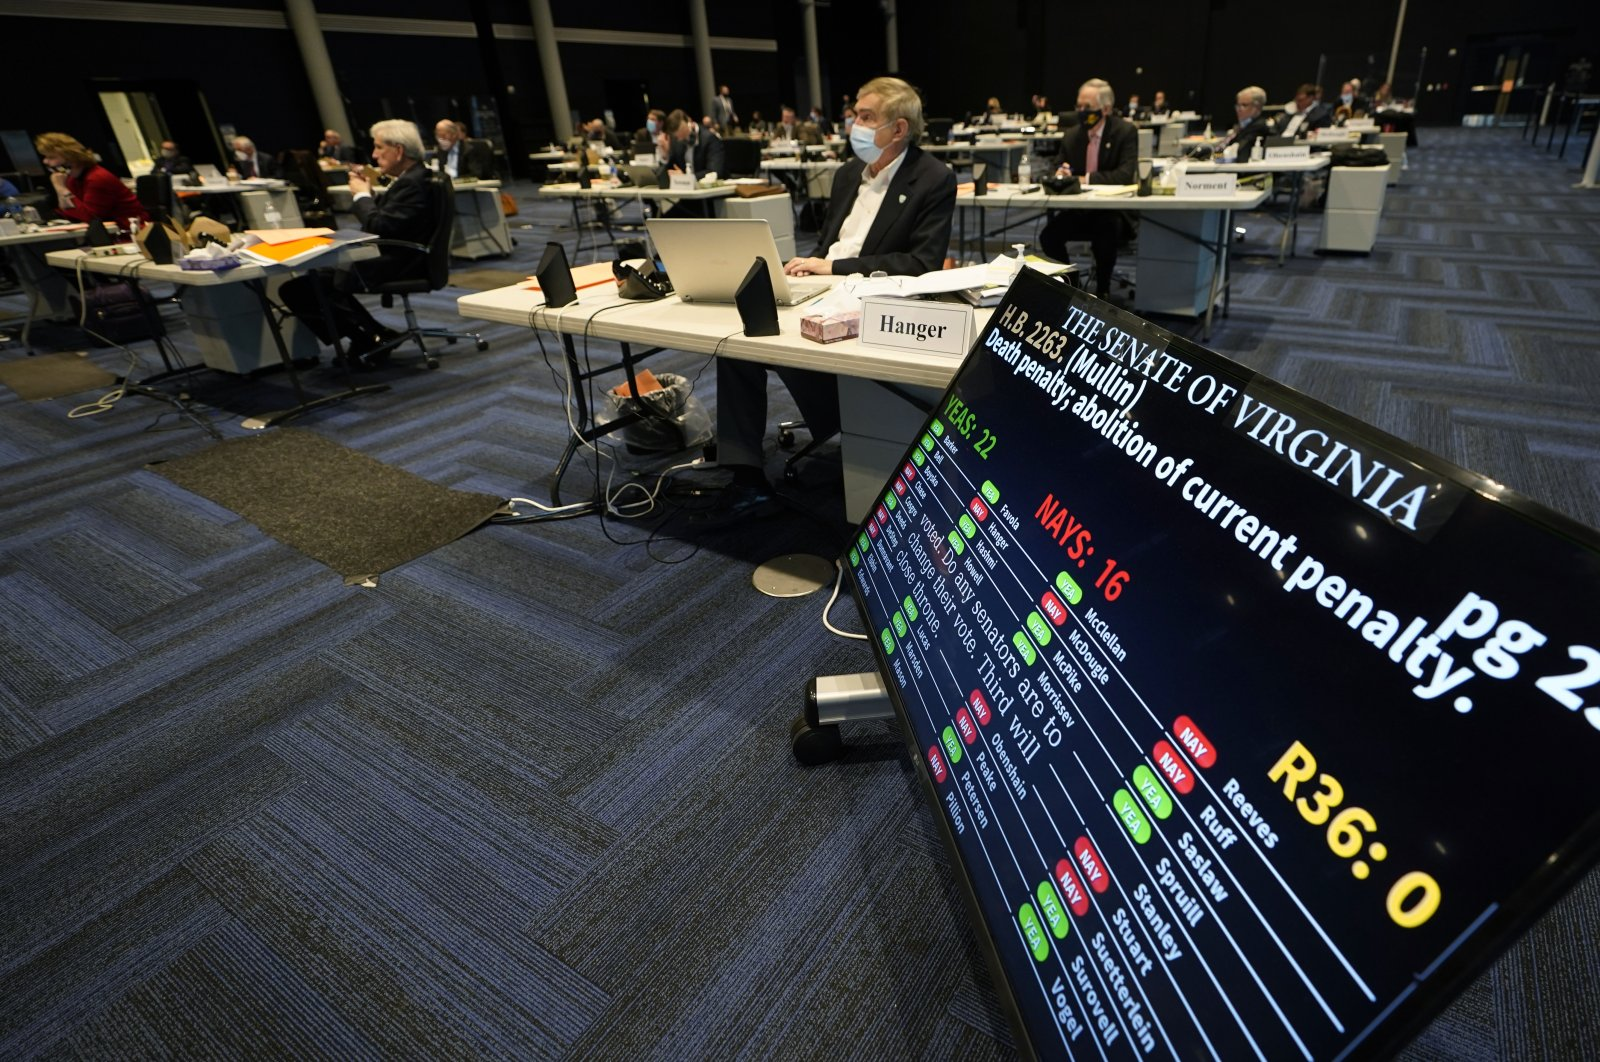 Virginia State Sen. Emmett Hanger, R-Augusta (front) looks at the vote tally board during a vote on a death penalty abolition bill at the Senate session at the Science Museum of Virginia in Richmond, Va., Monday, Feb. 22, 2021. (AP Photo)